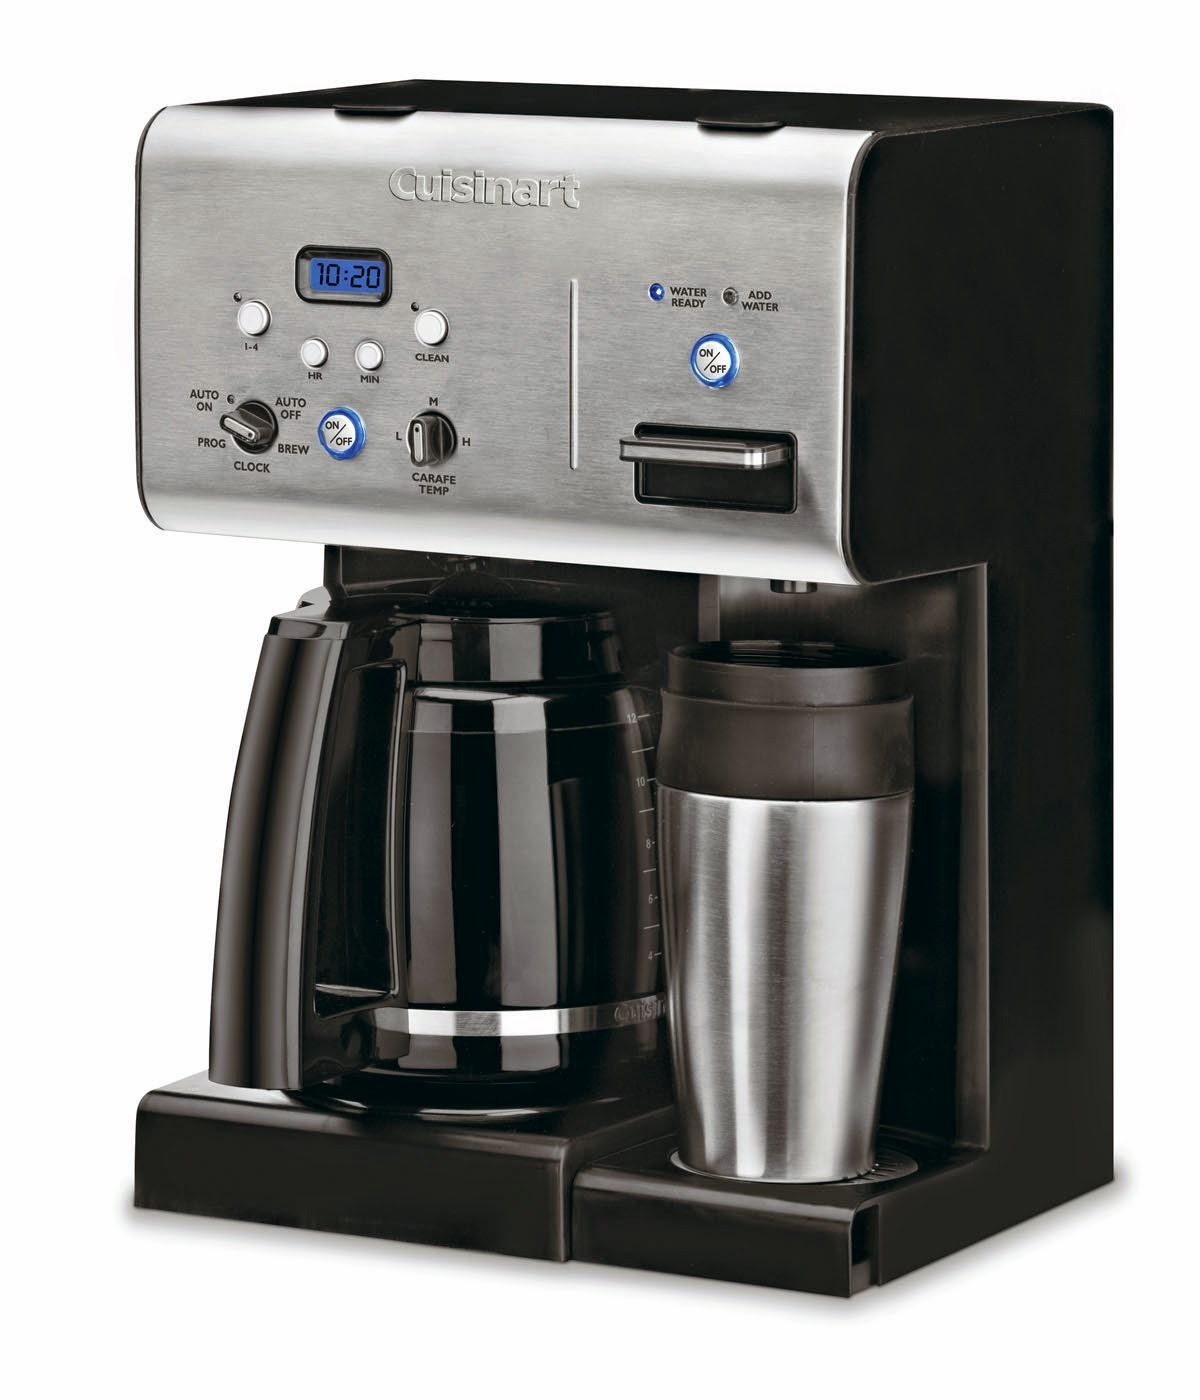 Featuring A Gl Carafe With Drip Free Spout The Cuisinart Chw 12 Also Has Very Convenient Self Clean Function And Its Own Hot Water System